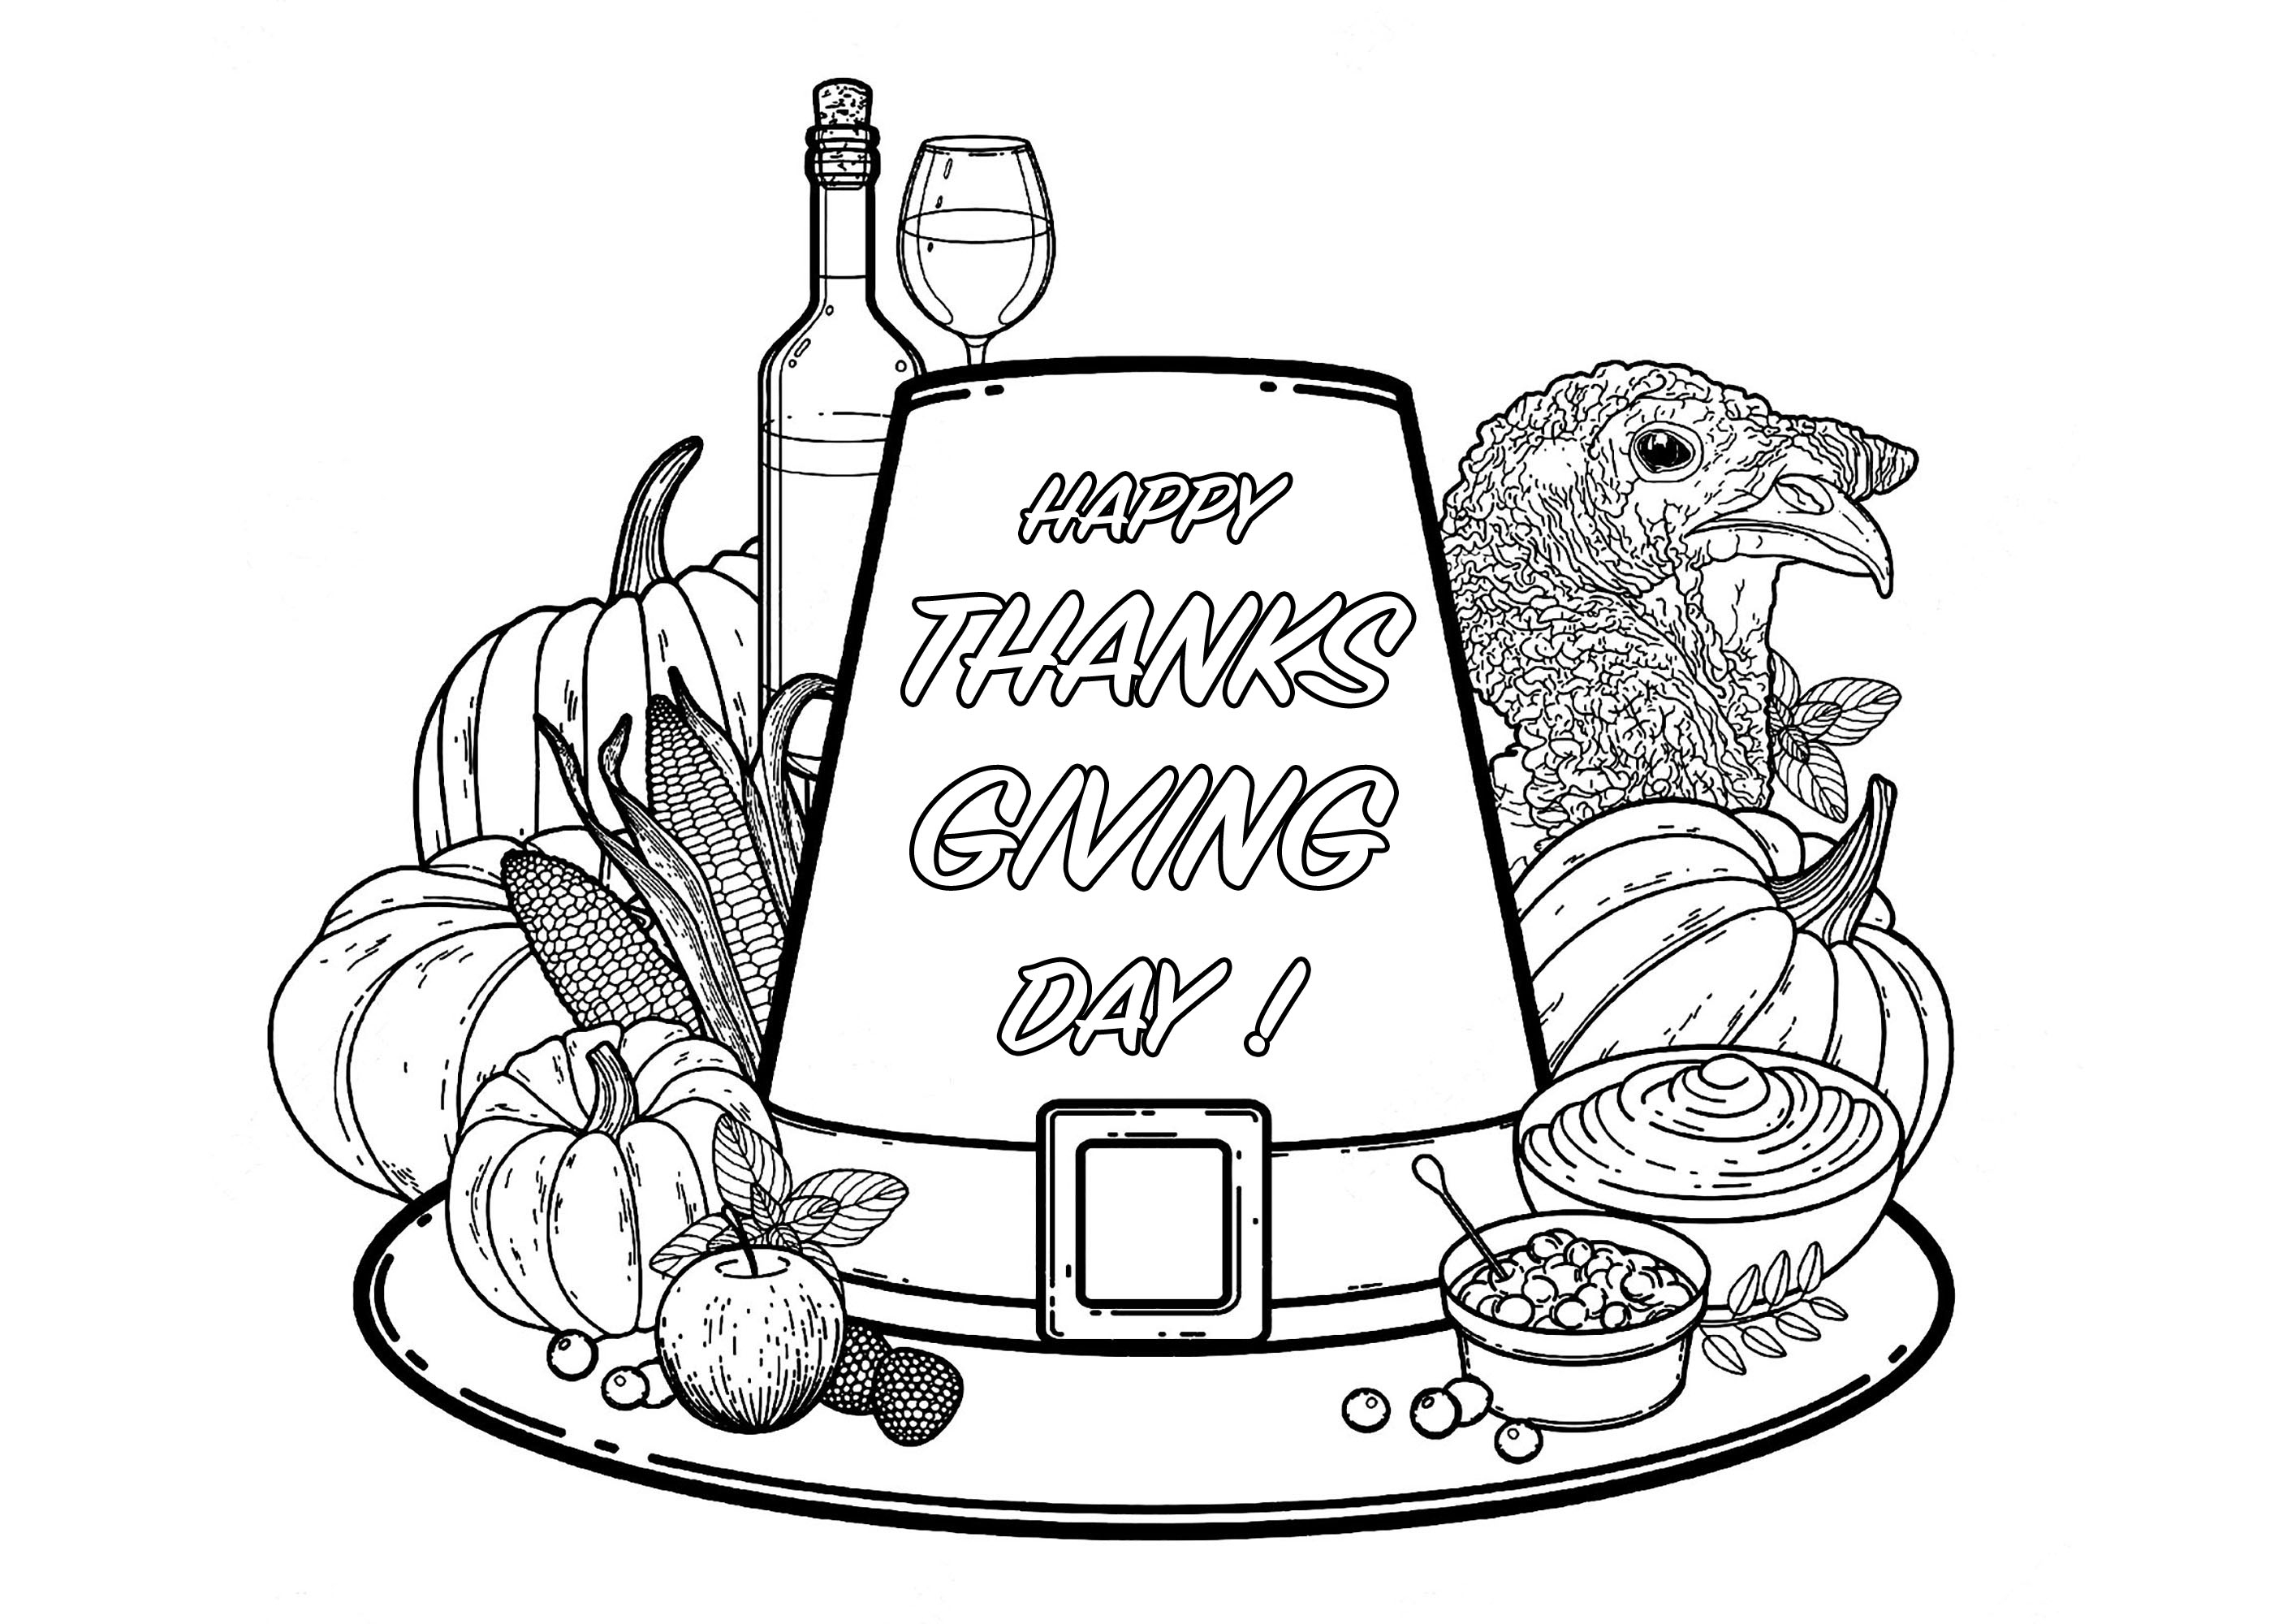 Thanksgiving Day - Thanksgiving - Coloriages Difficiles Pour Adultes serapportantà Happy Color Coloriage